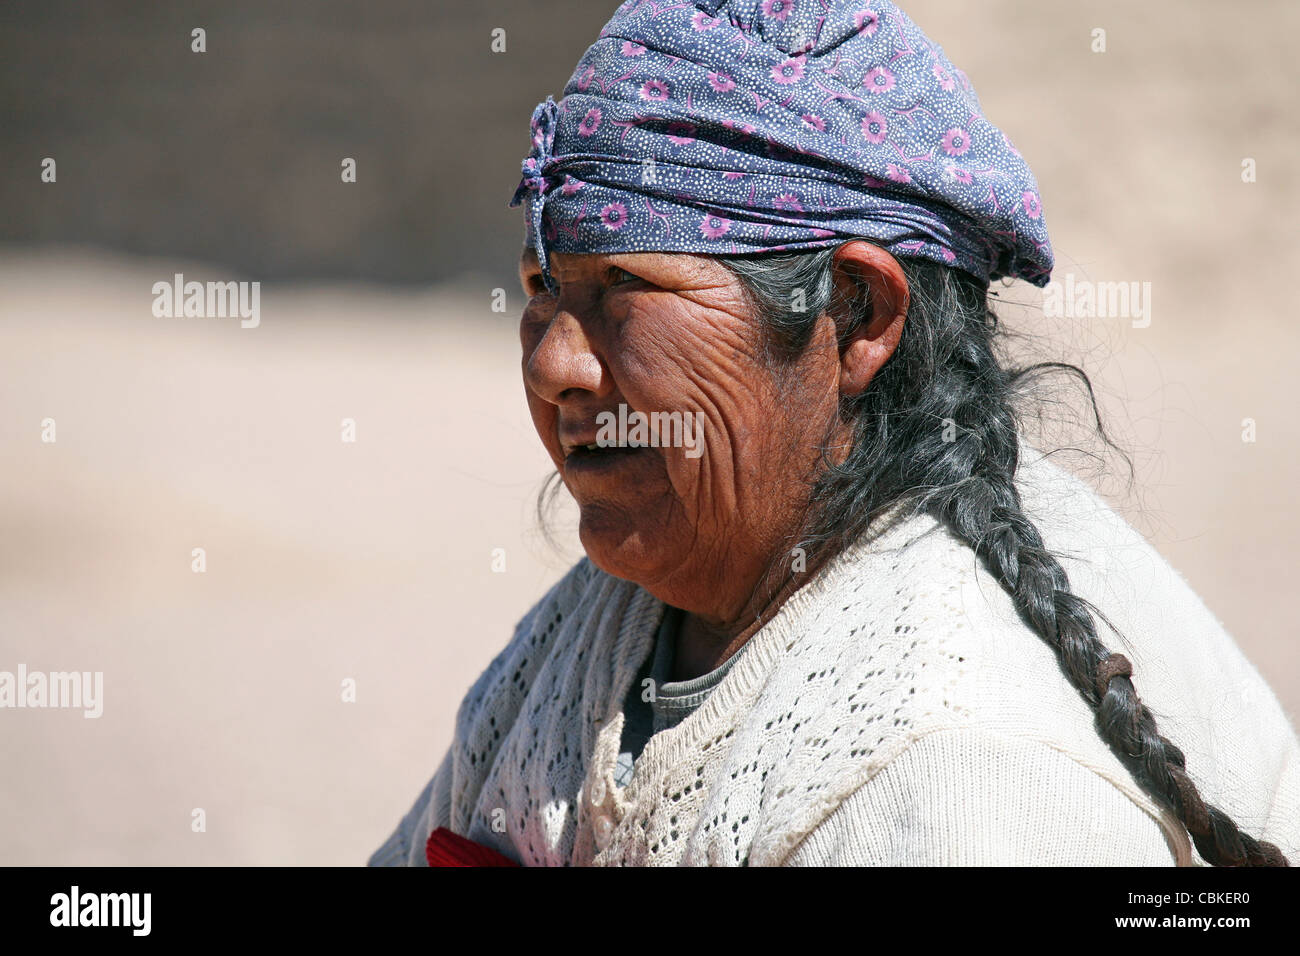 Portrait of traditionally dressed Bolivian woman with headscarf and tress, Altiplano, Bolivia - Stock Image